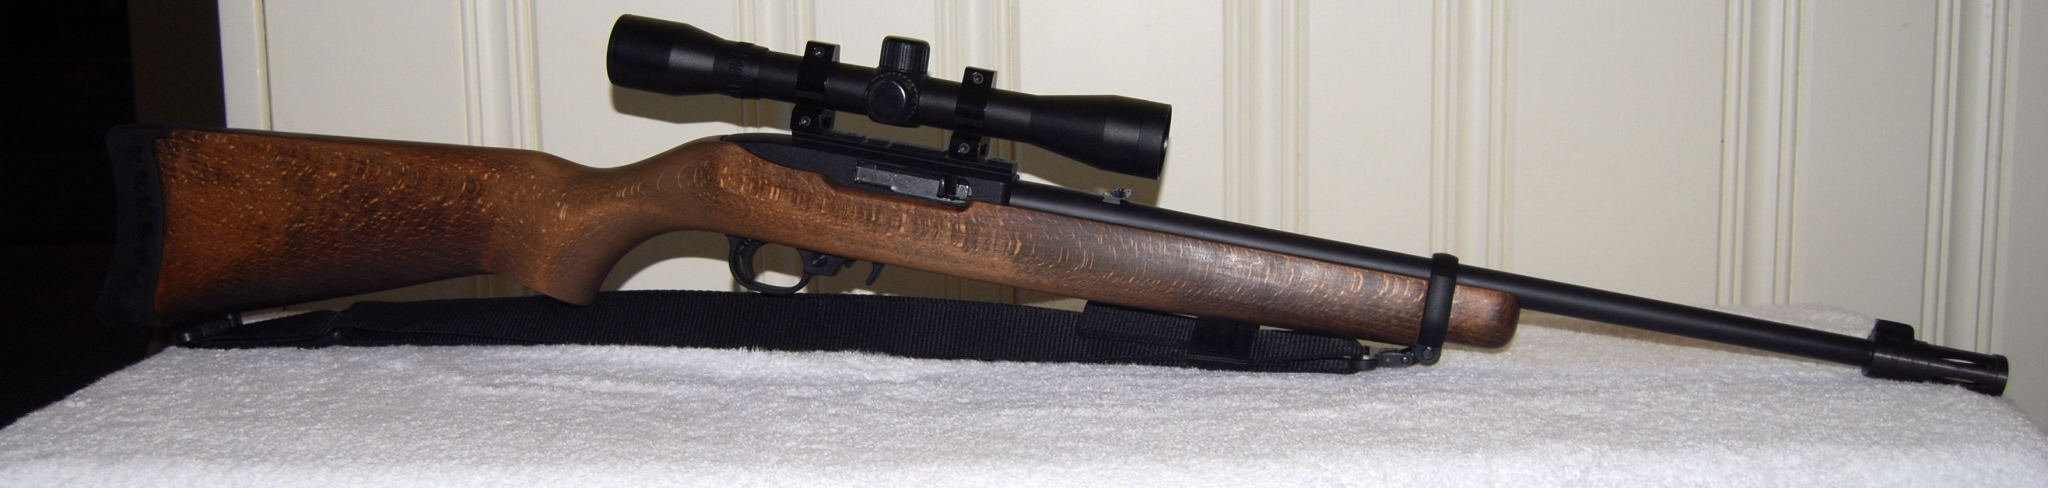 simmons 3x9 scope. recommendations for a scope marlin model 60 .22lr-ruger-10- simmons 3x9